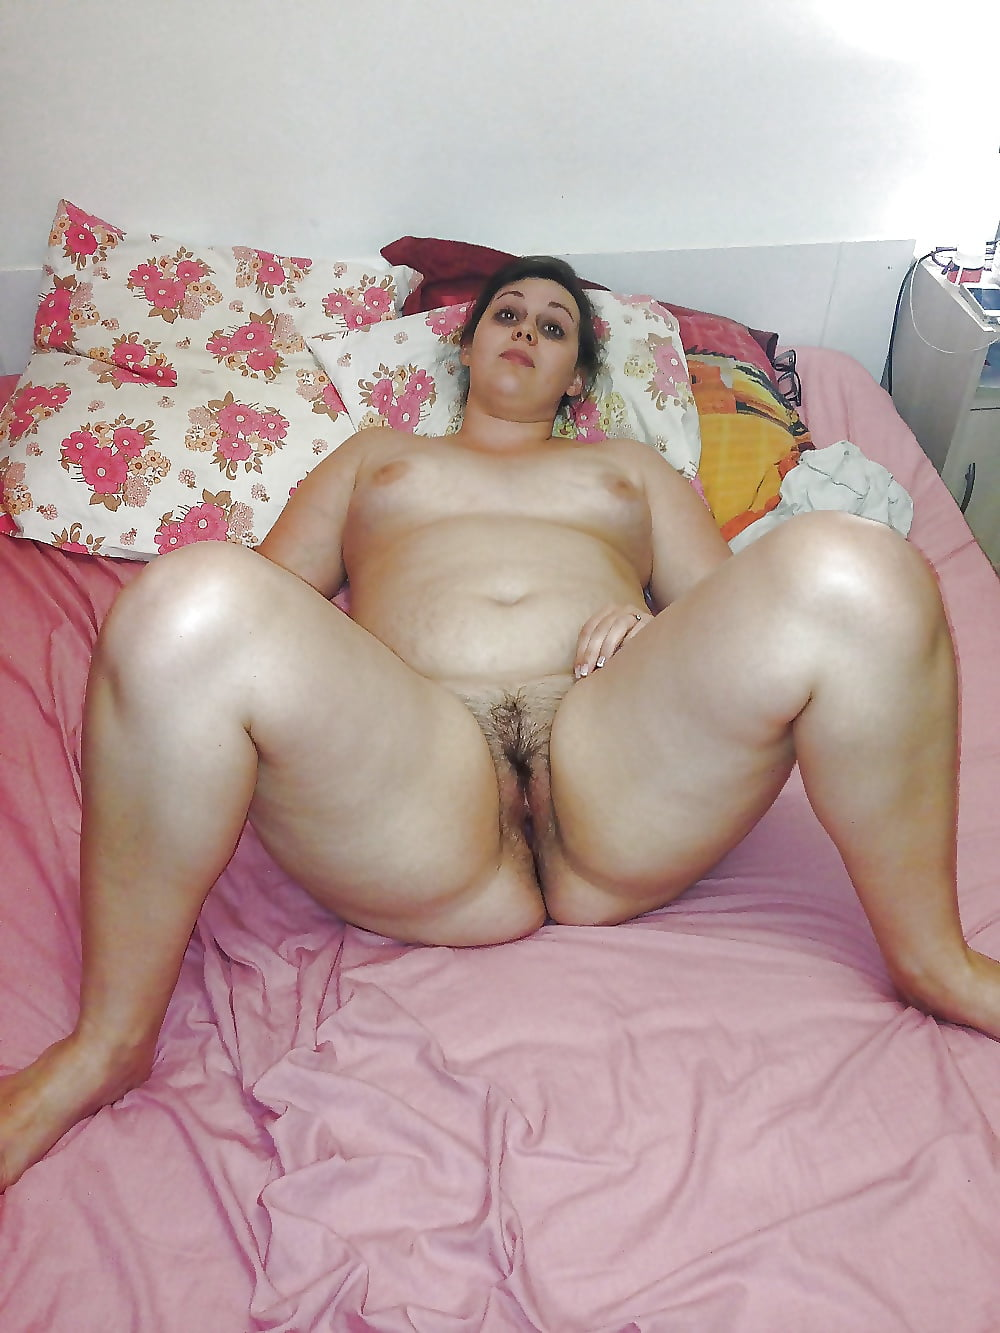 Chubby arab girl striptease